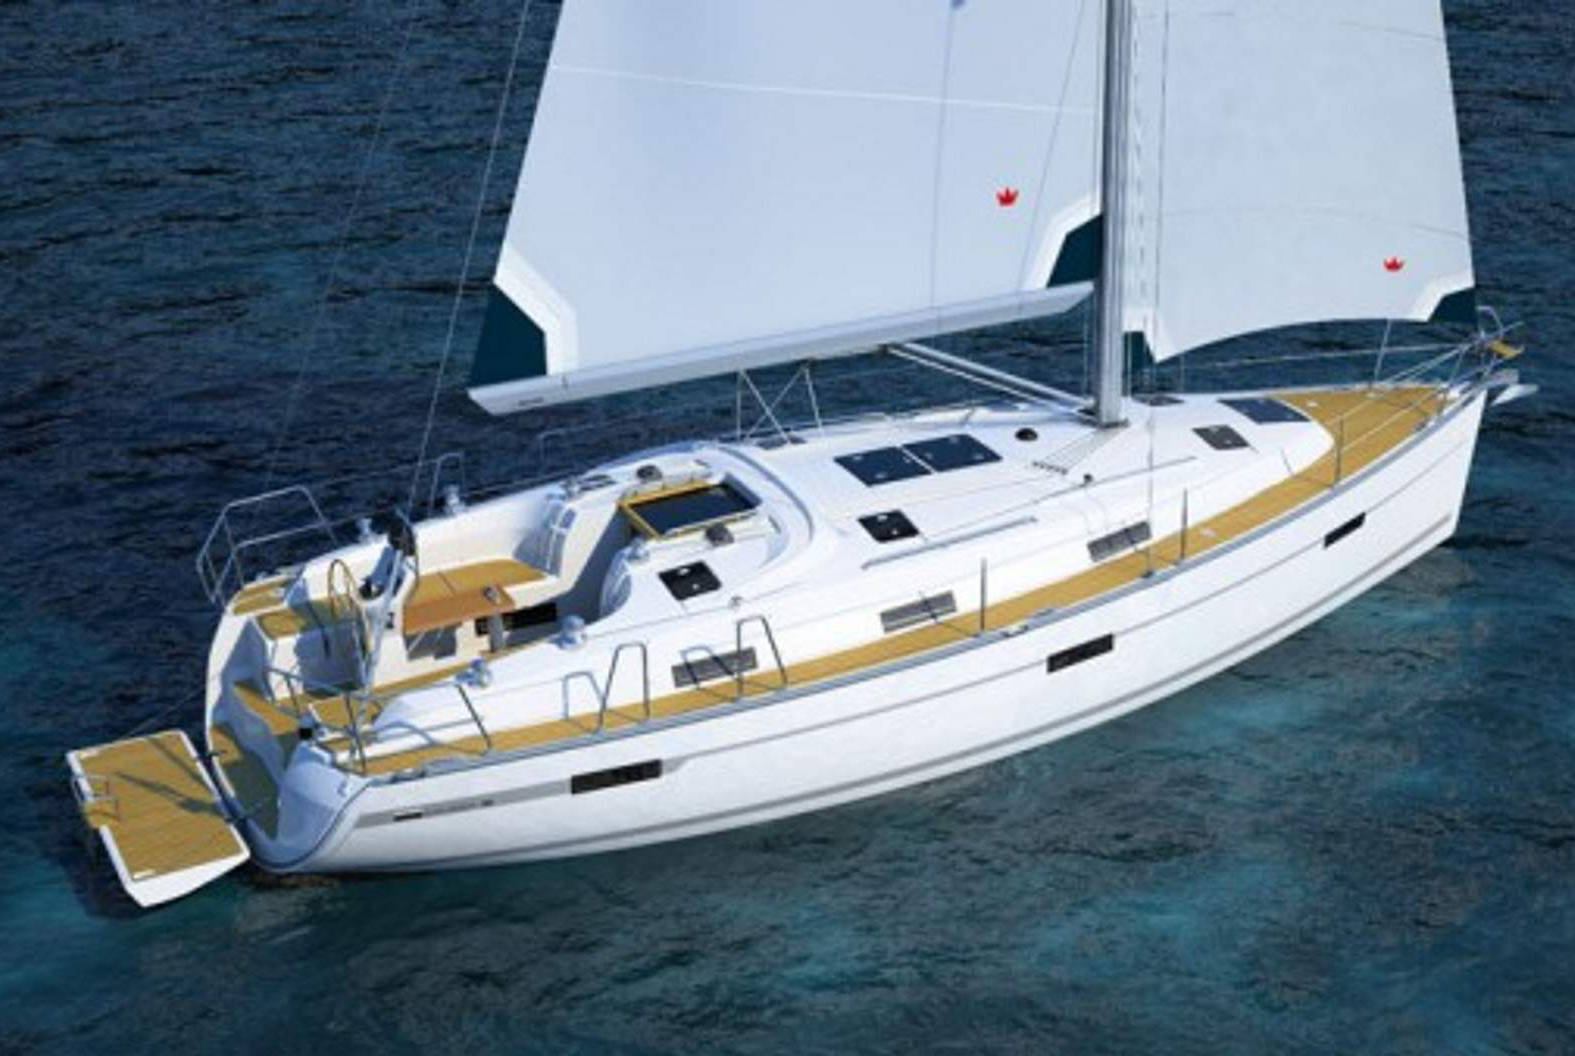 Full Team Bavaria Charter Boat 36 Cruiser